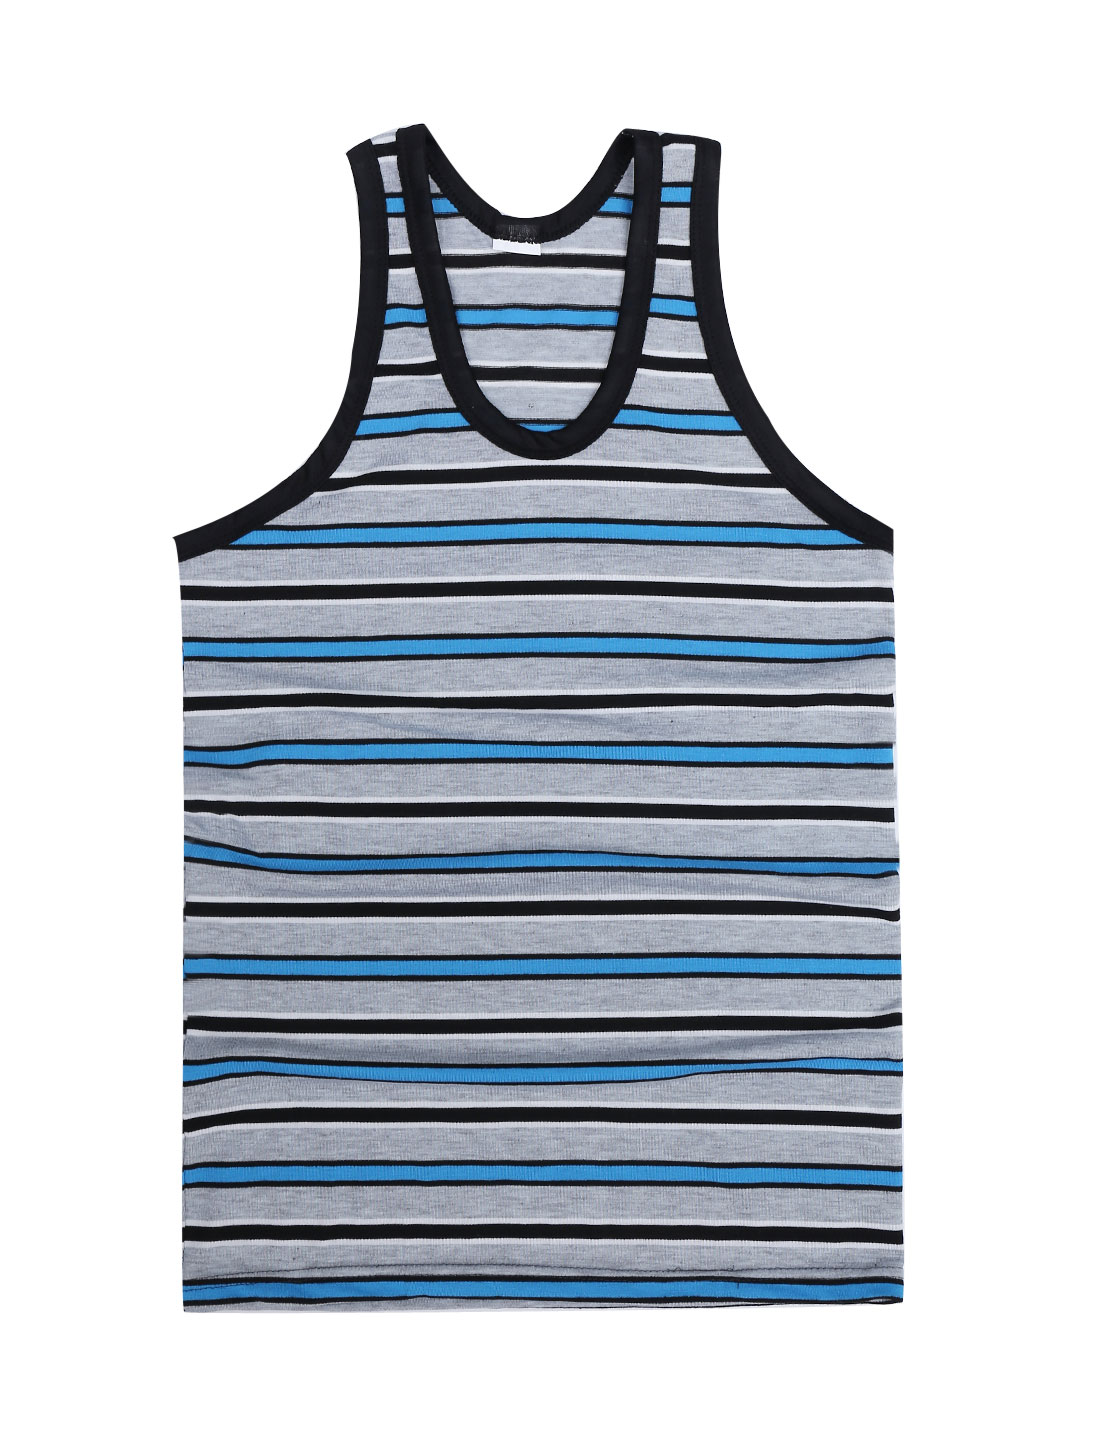 Men Sleeveless U Neck Stripes Summer NEW Tank Top Light Blue Light Gray S